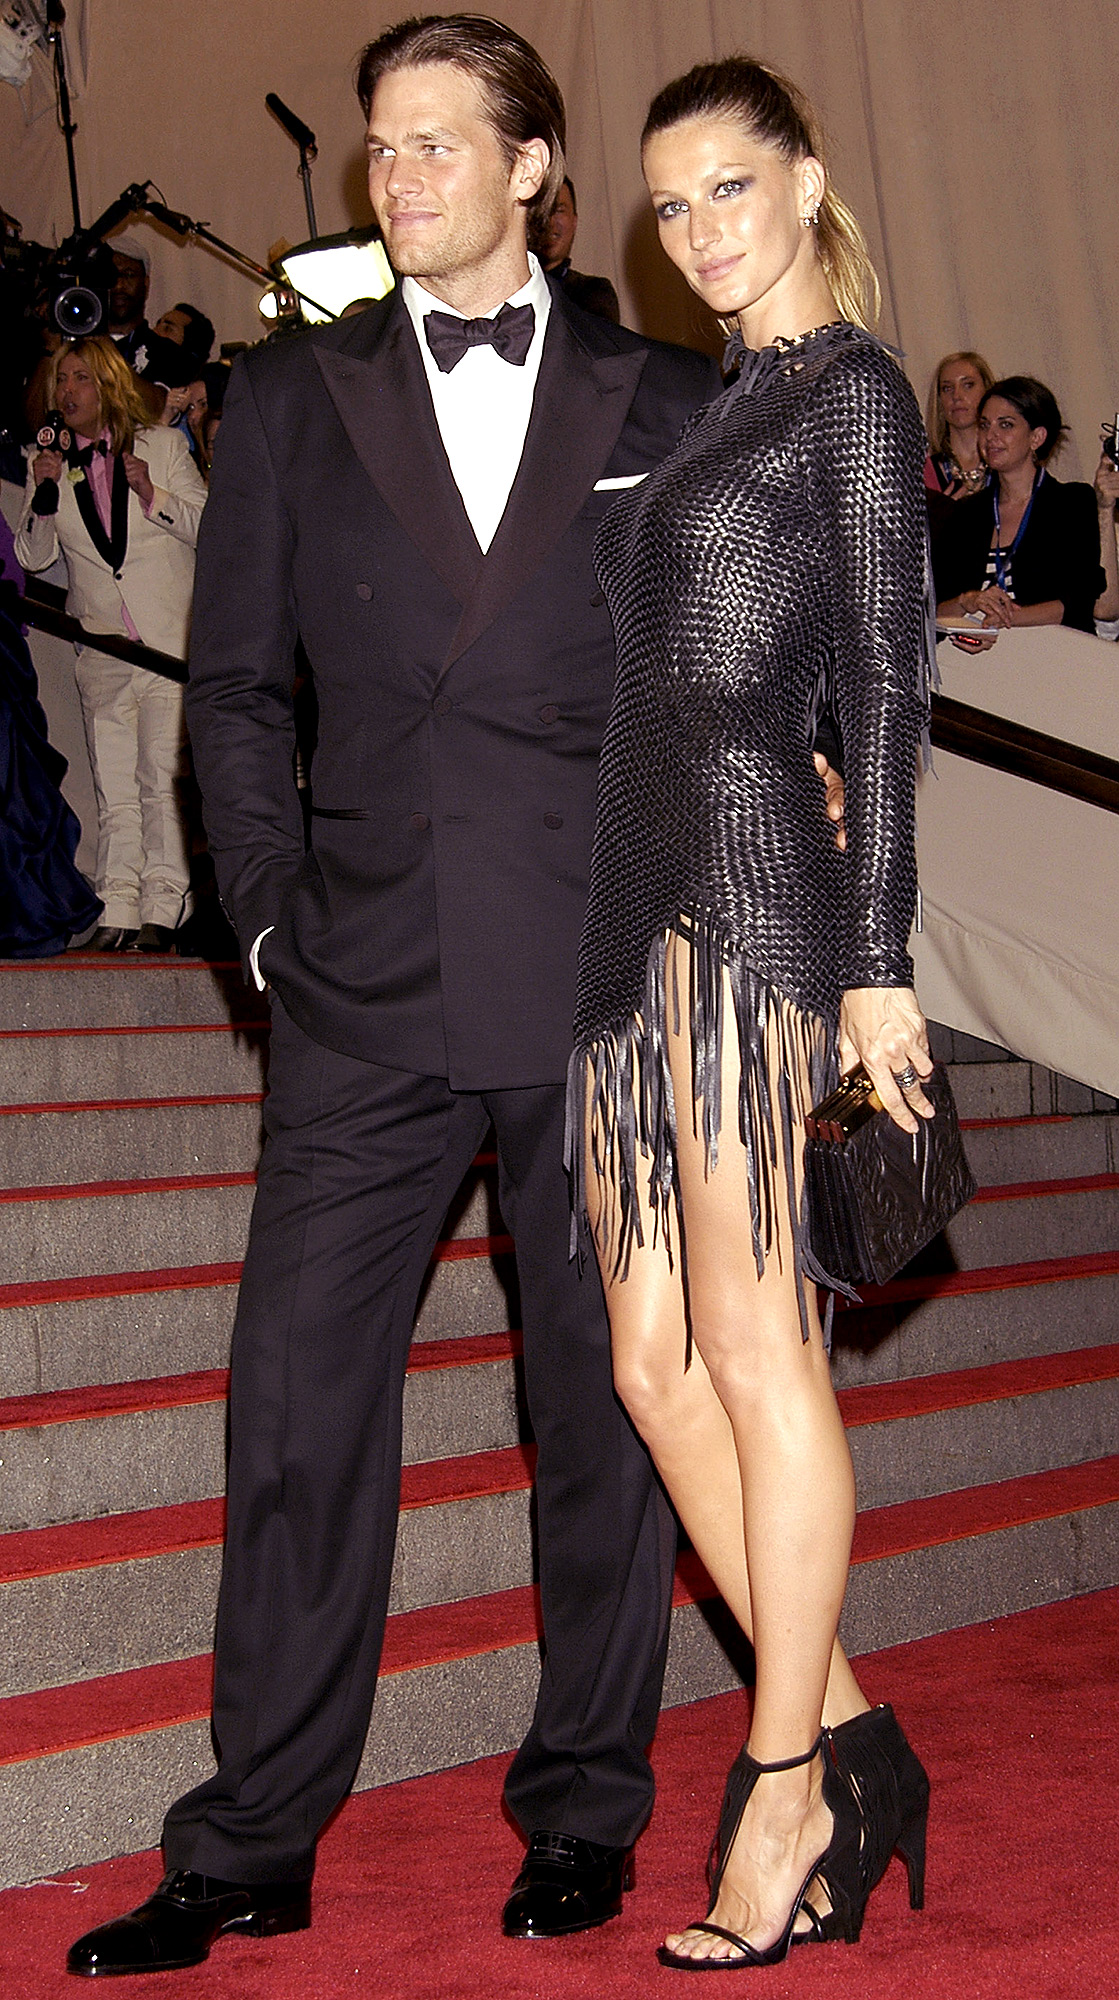 """Tom Brady and Gisele Bundchen attend the Costume Institute Gala Benefit to celebrate the opening of the """"American Woman: Fashioning a National Identity"""" exhibition at The Metropolitan Museum of Art on May 3, 2010 in New York City."""